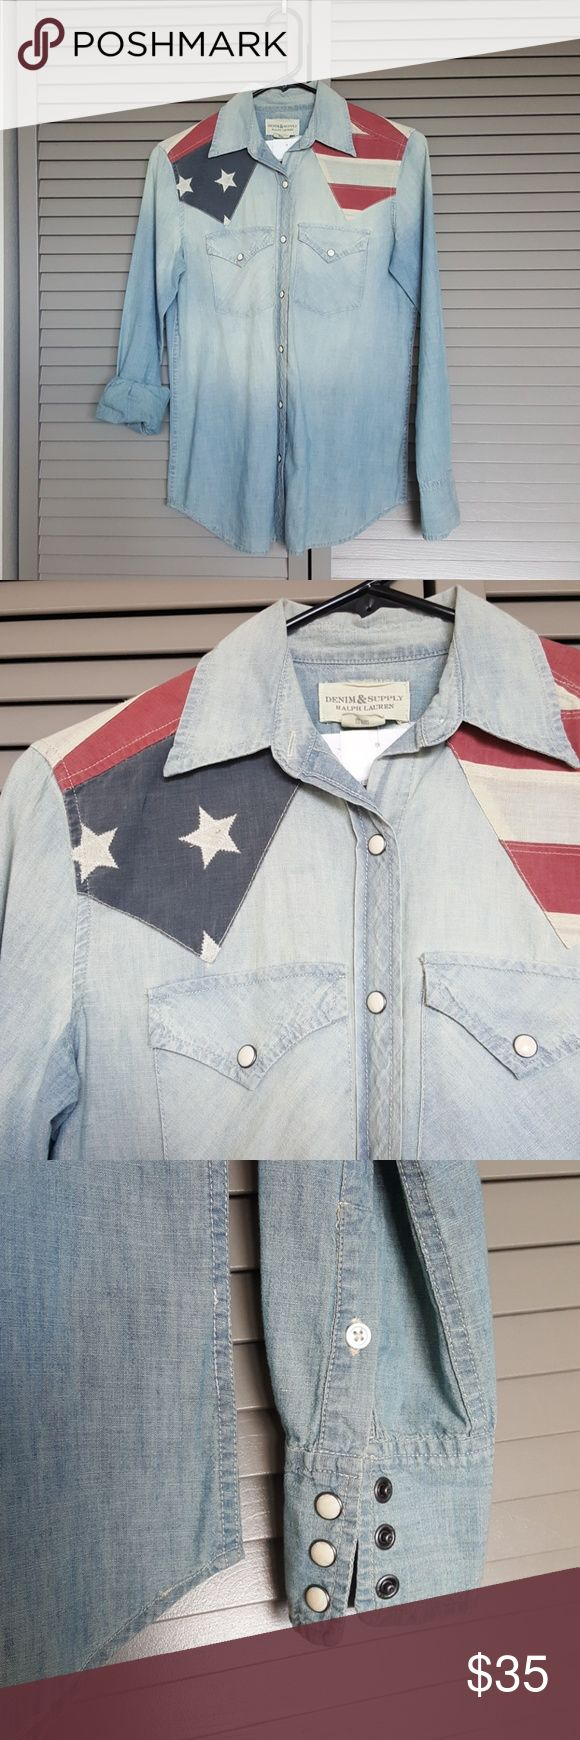 """American Flag Button Down for 4th of July!! Cotton chambray style button down with American Flag detailing. Western style buttons. Get it now for the Fourth of July!!!   I am 5'2"""", 110lbs with an Athletic build, fits relaxed. See comments for measurements.   Brand new, never worn, no tags :( Denim & Supply Ralph Lauren Tops Button Down Shirts"""